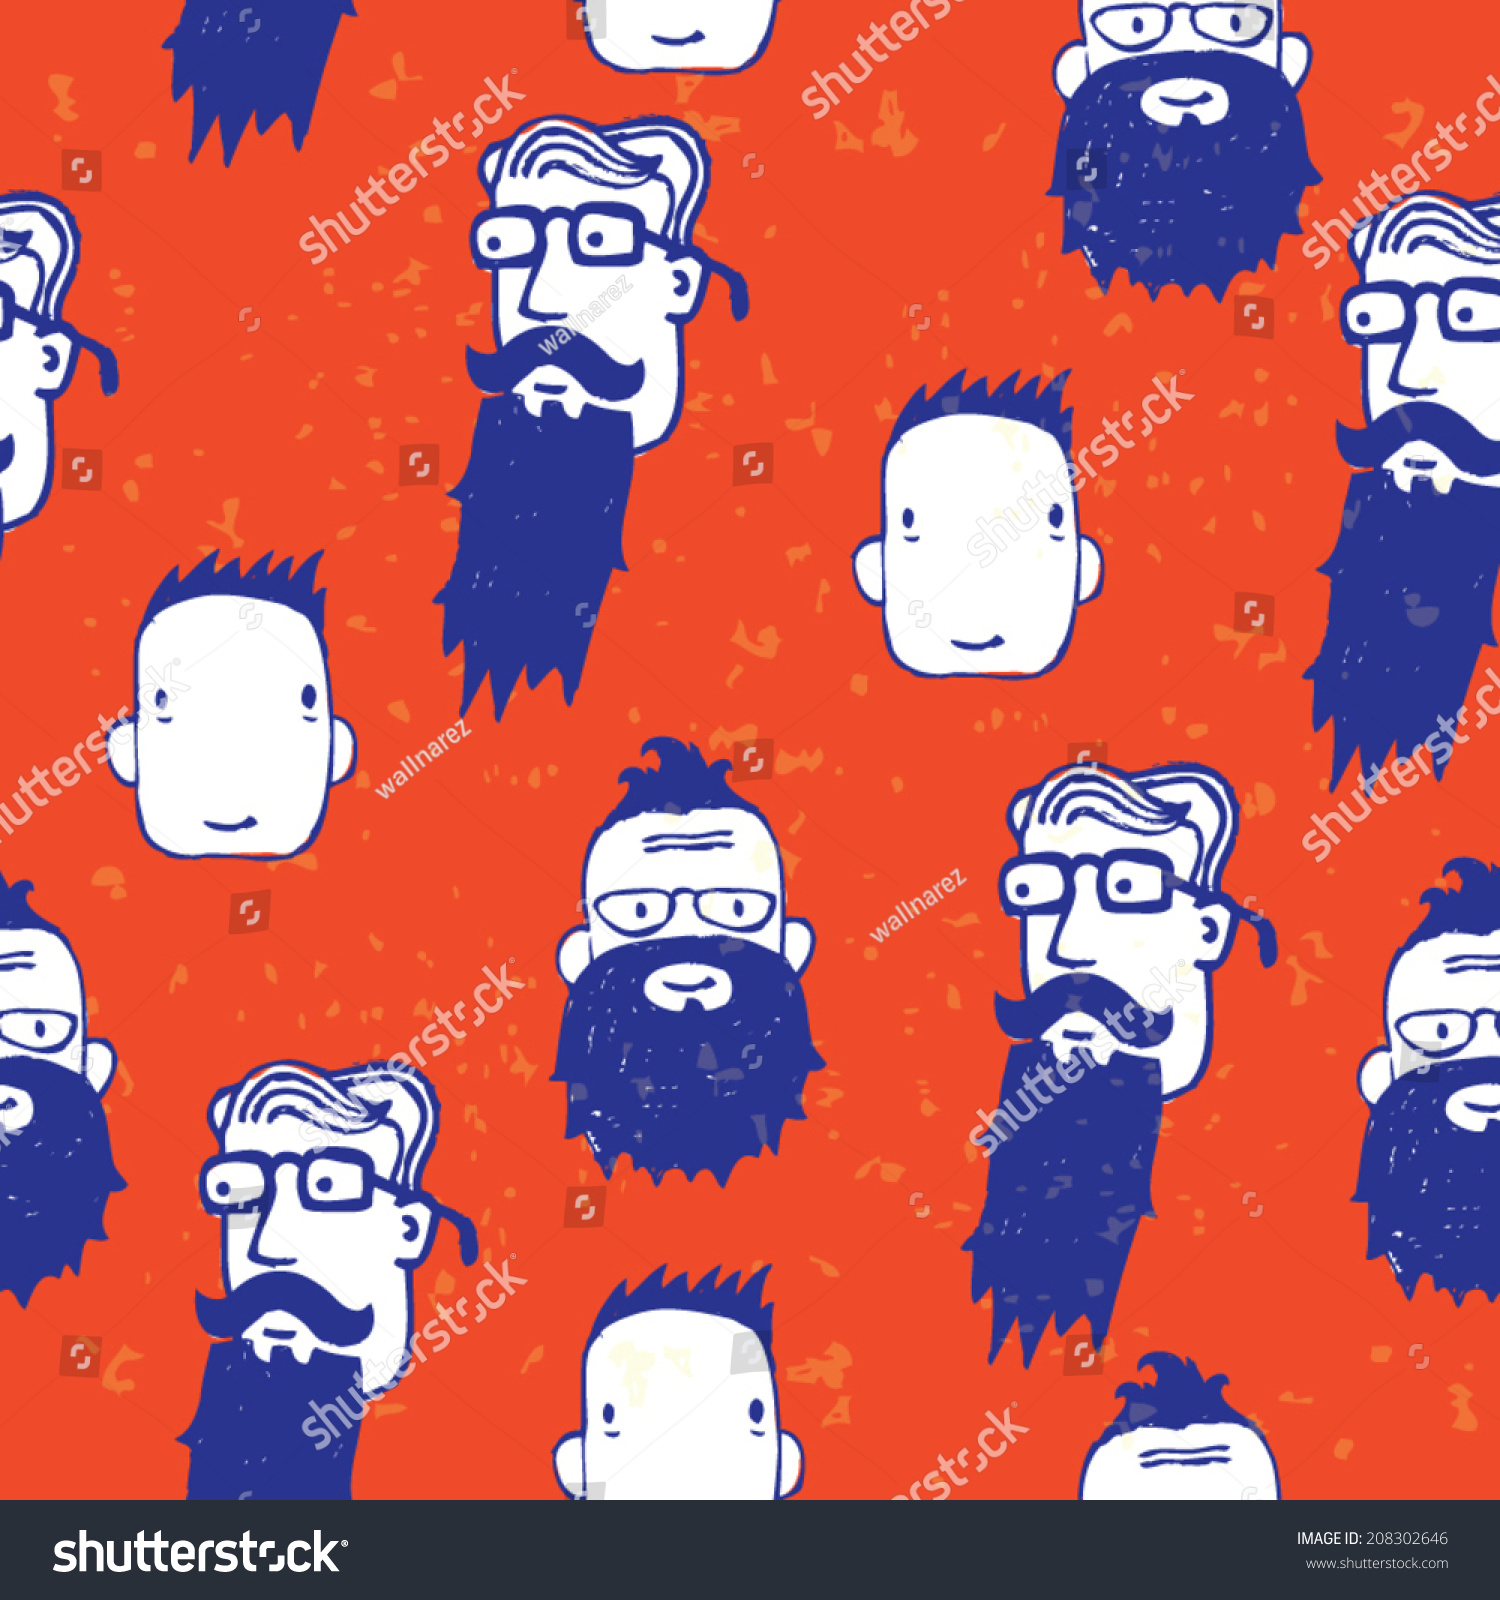 Wallpaper Cartoon Hipster Style Stock Vector Royalty Free